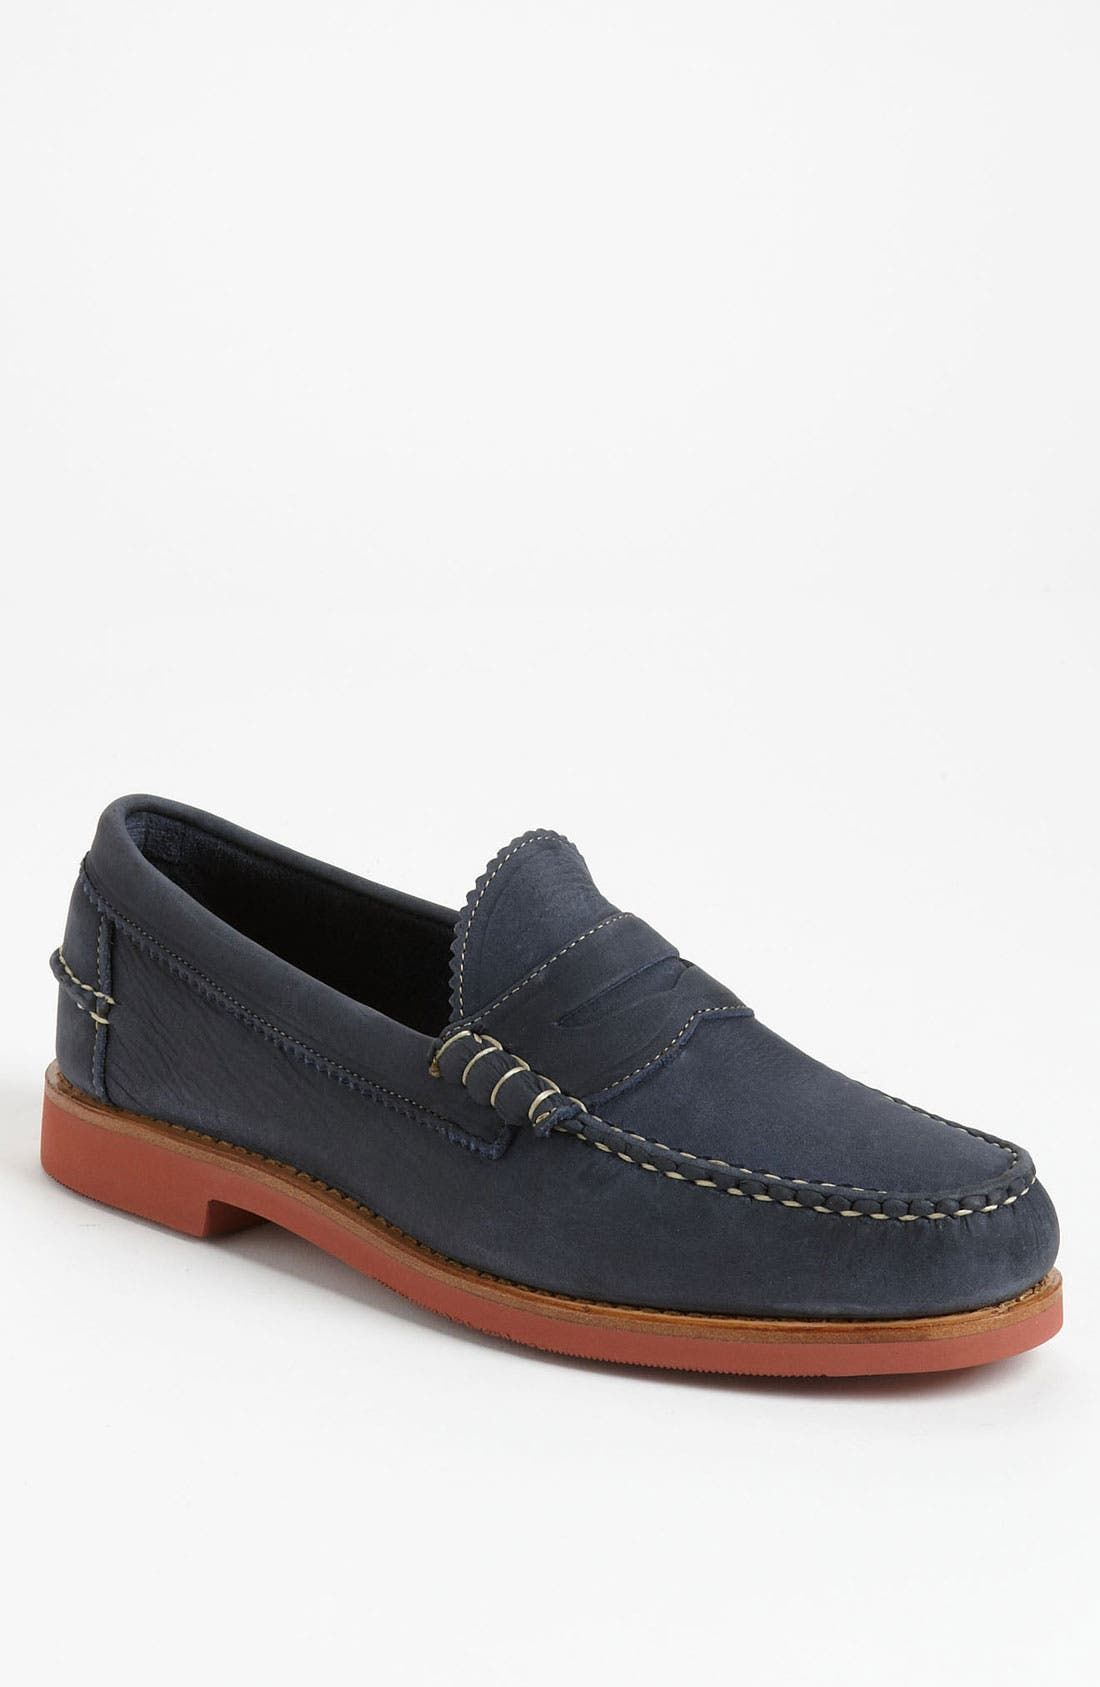 Alternate Image 1 Selected - Allen Edmonds 'Sedona' Penny Loafer (Online Only)